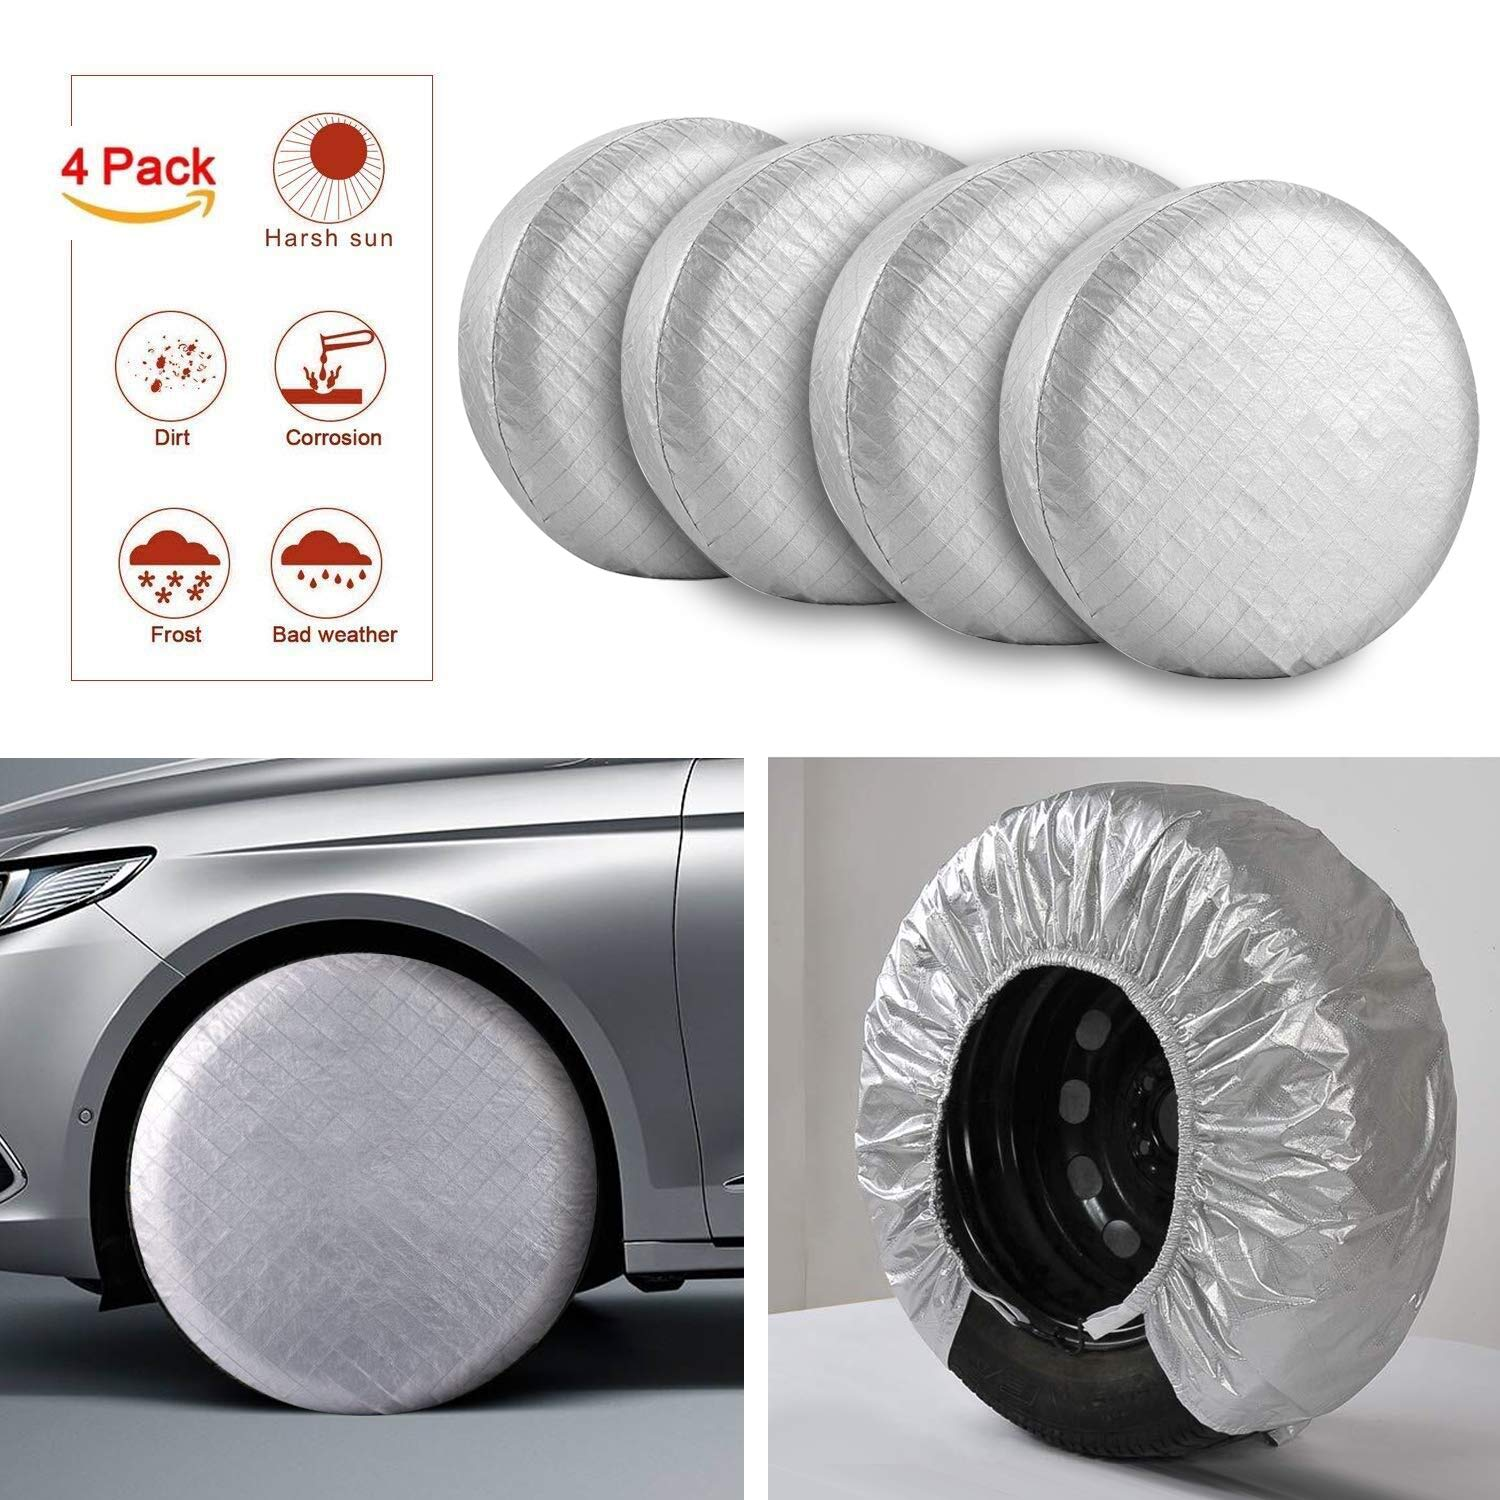 Kohree Set of 4 Tire Covers Waterproof UV Sun RV Trailer Tire Protectors Fits 30 to 32 Truck Camper Van Auto Car Tires Diameters Aluminum Film Cotton Lining Tire Protectors